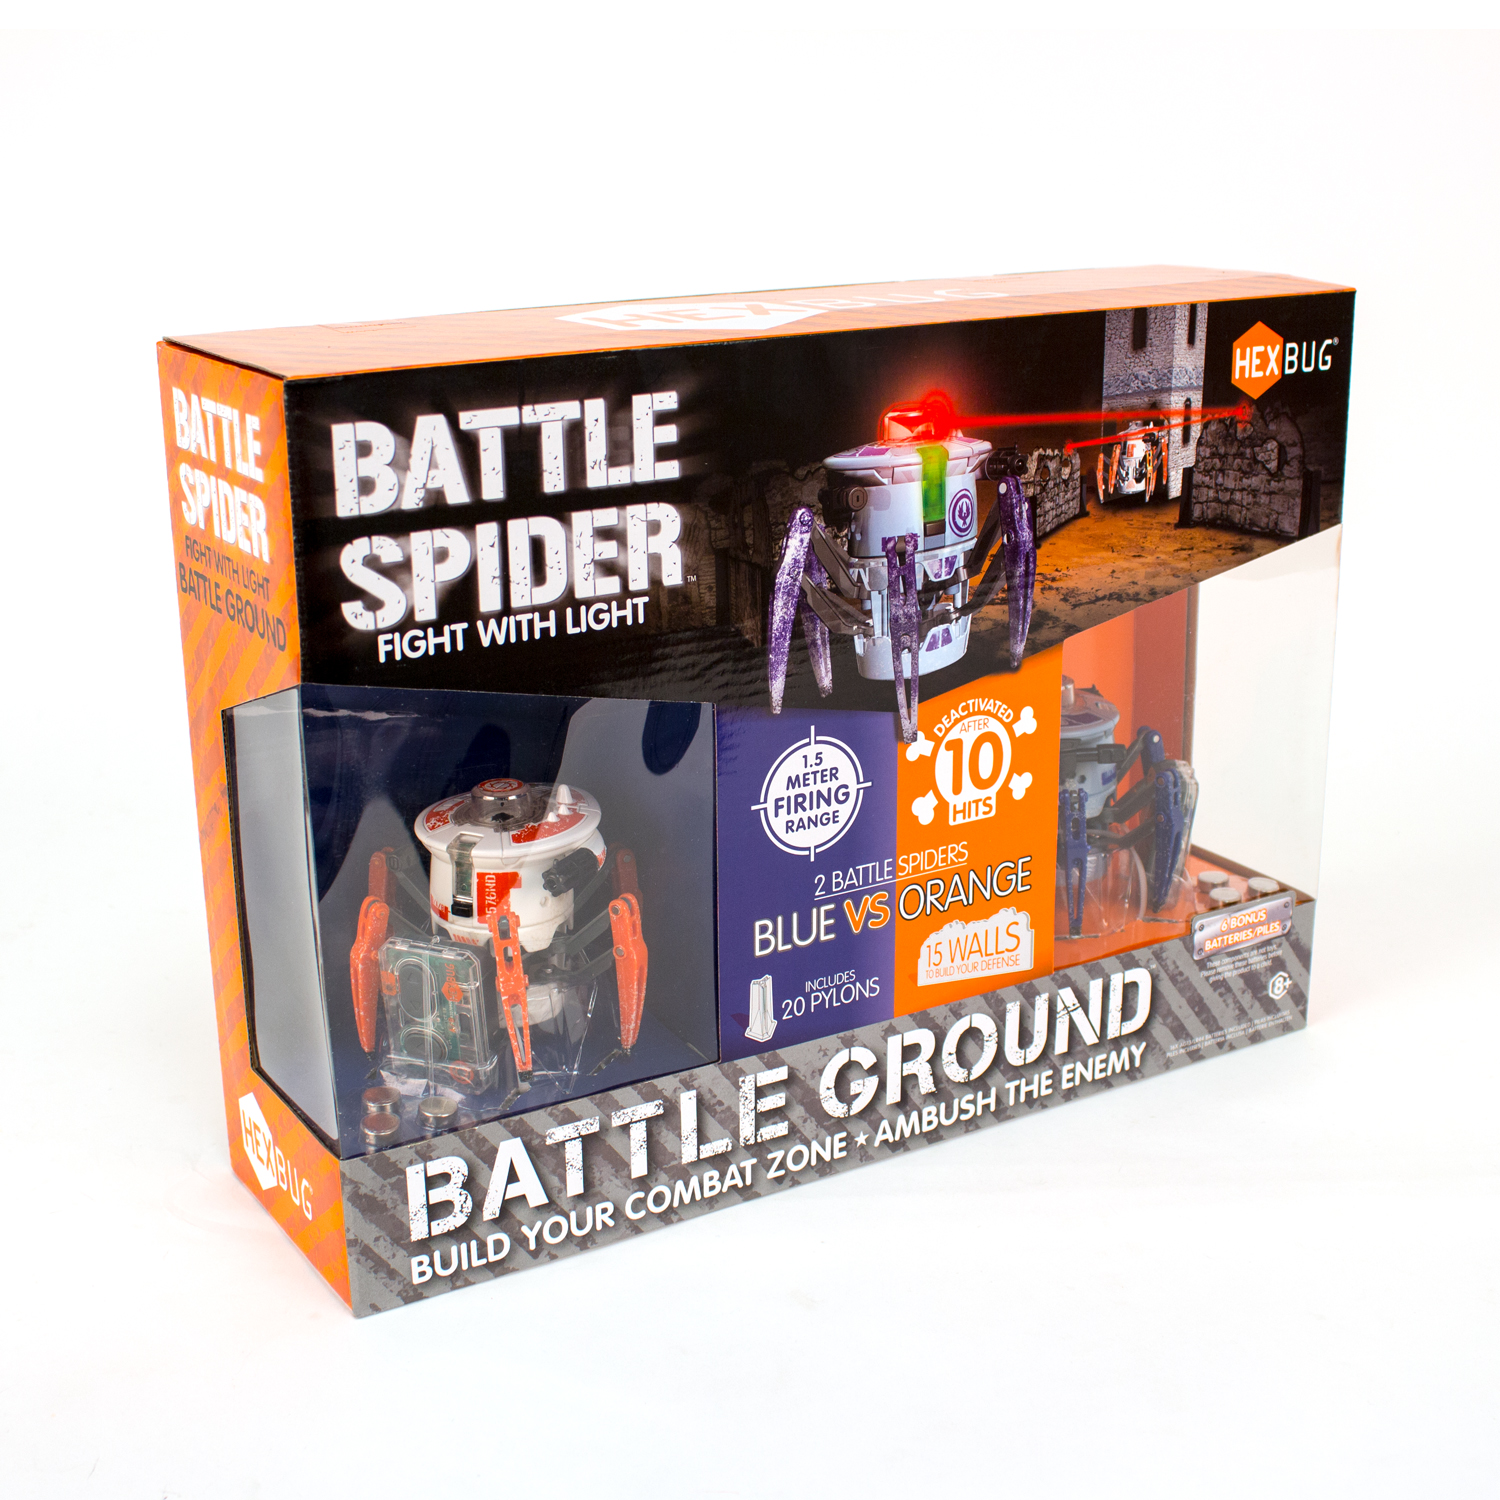 Battle Spider packaging